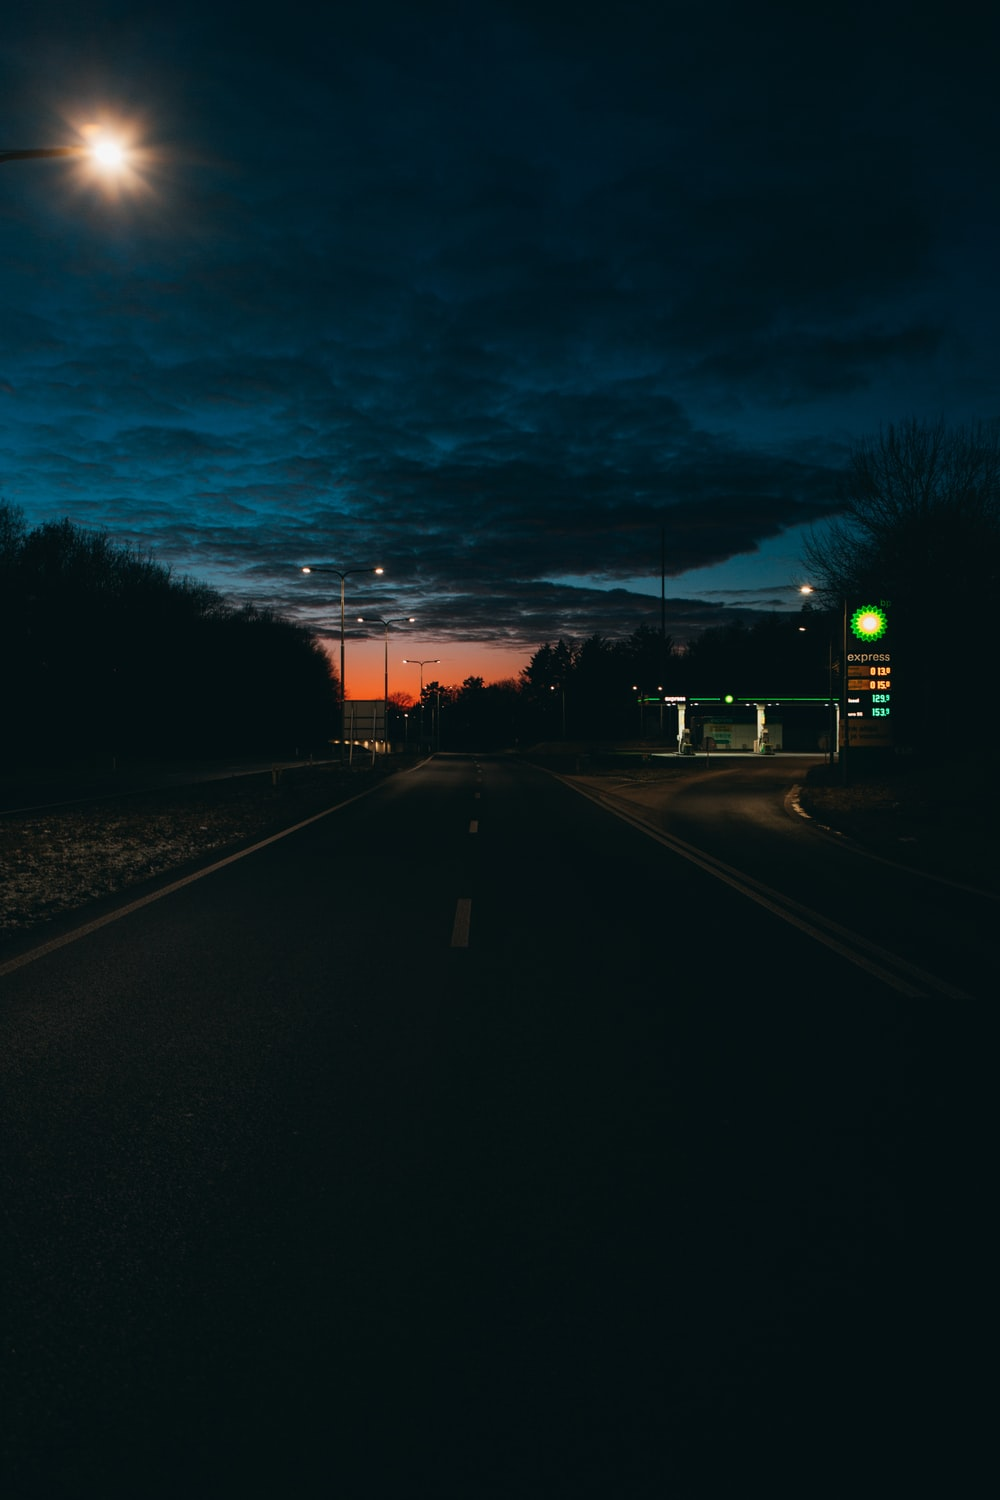 highway during nighttime